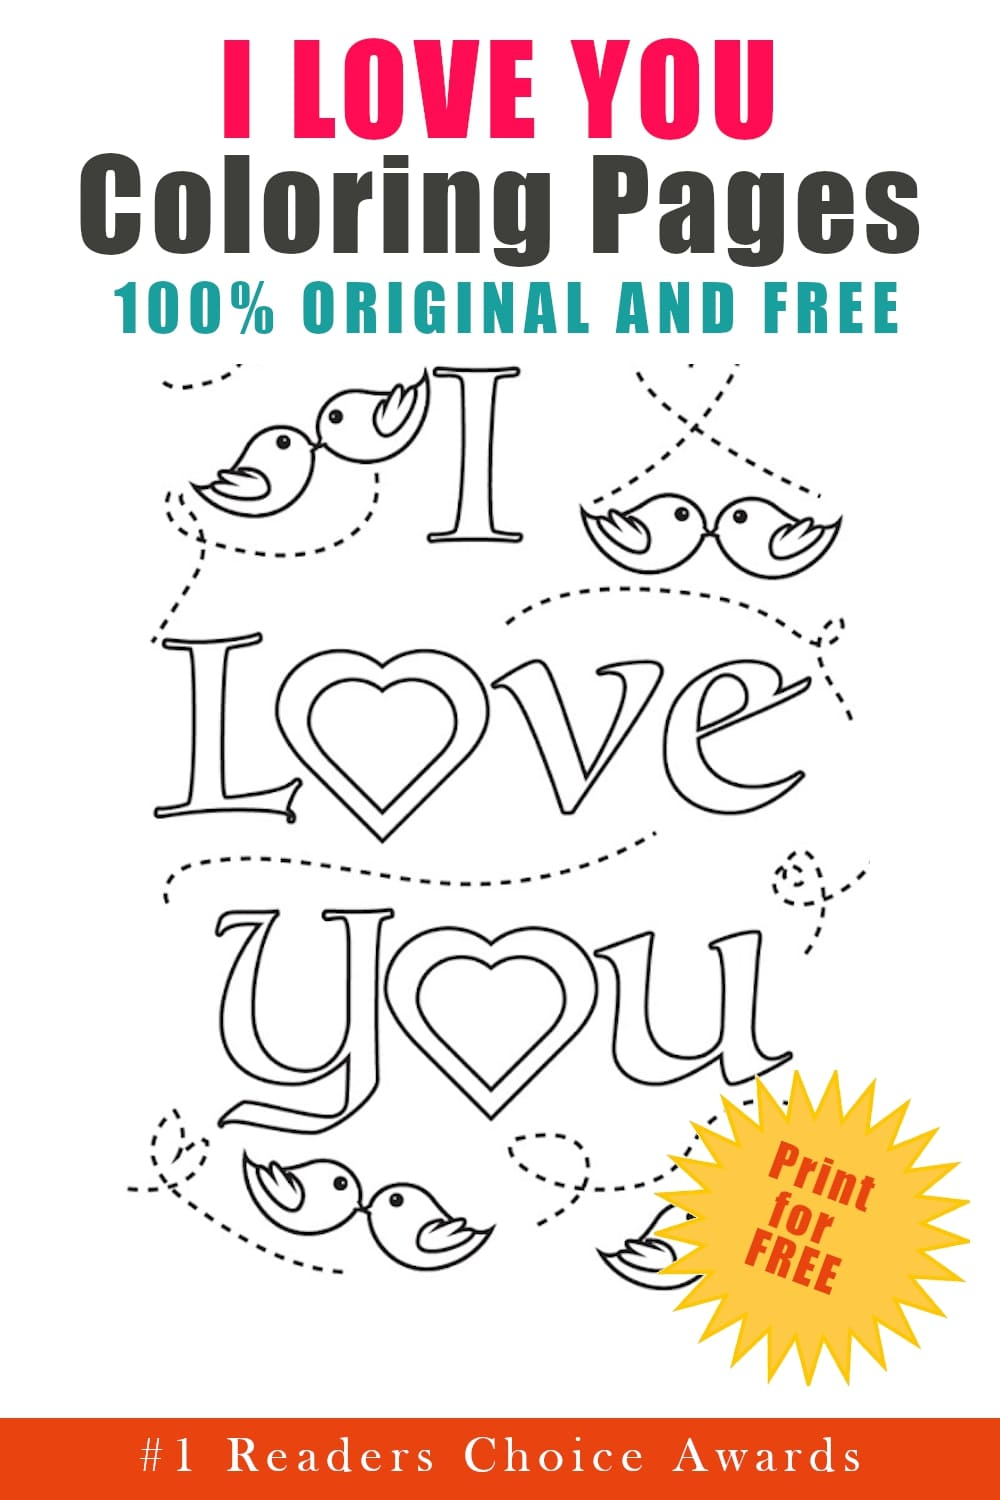 original and free I love you coloring pages free printable